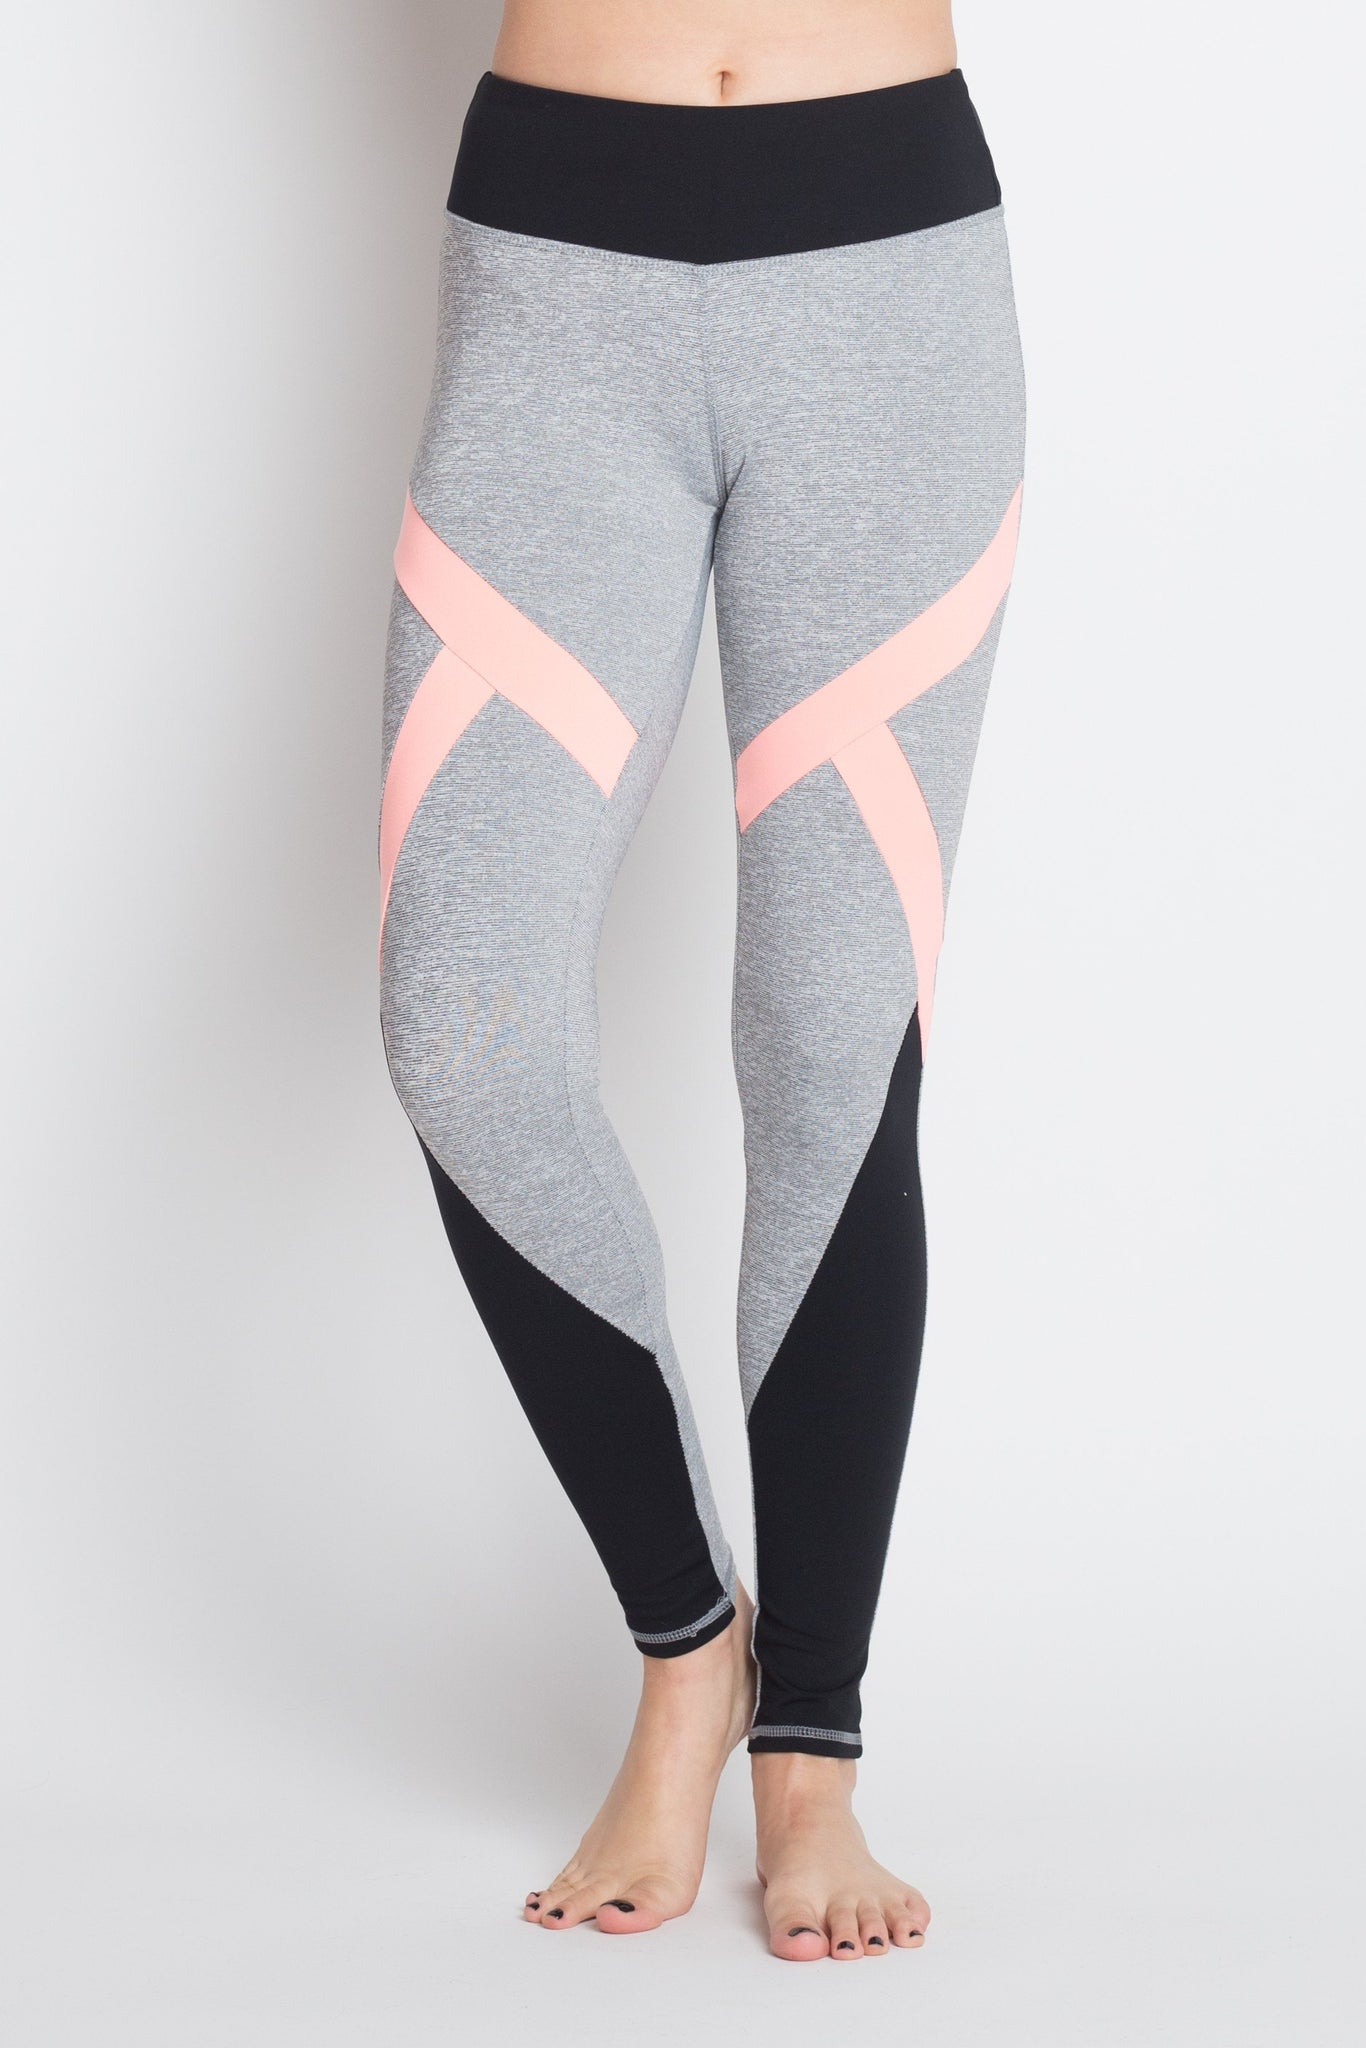 Contrast Color Panel Yoga Legging-August Bee